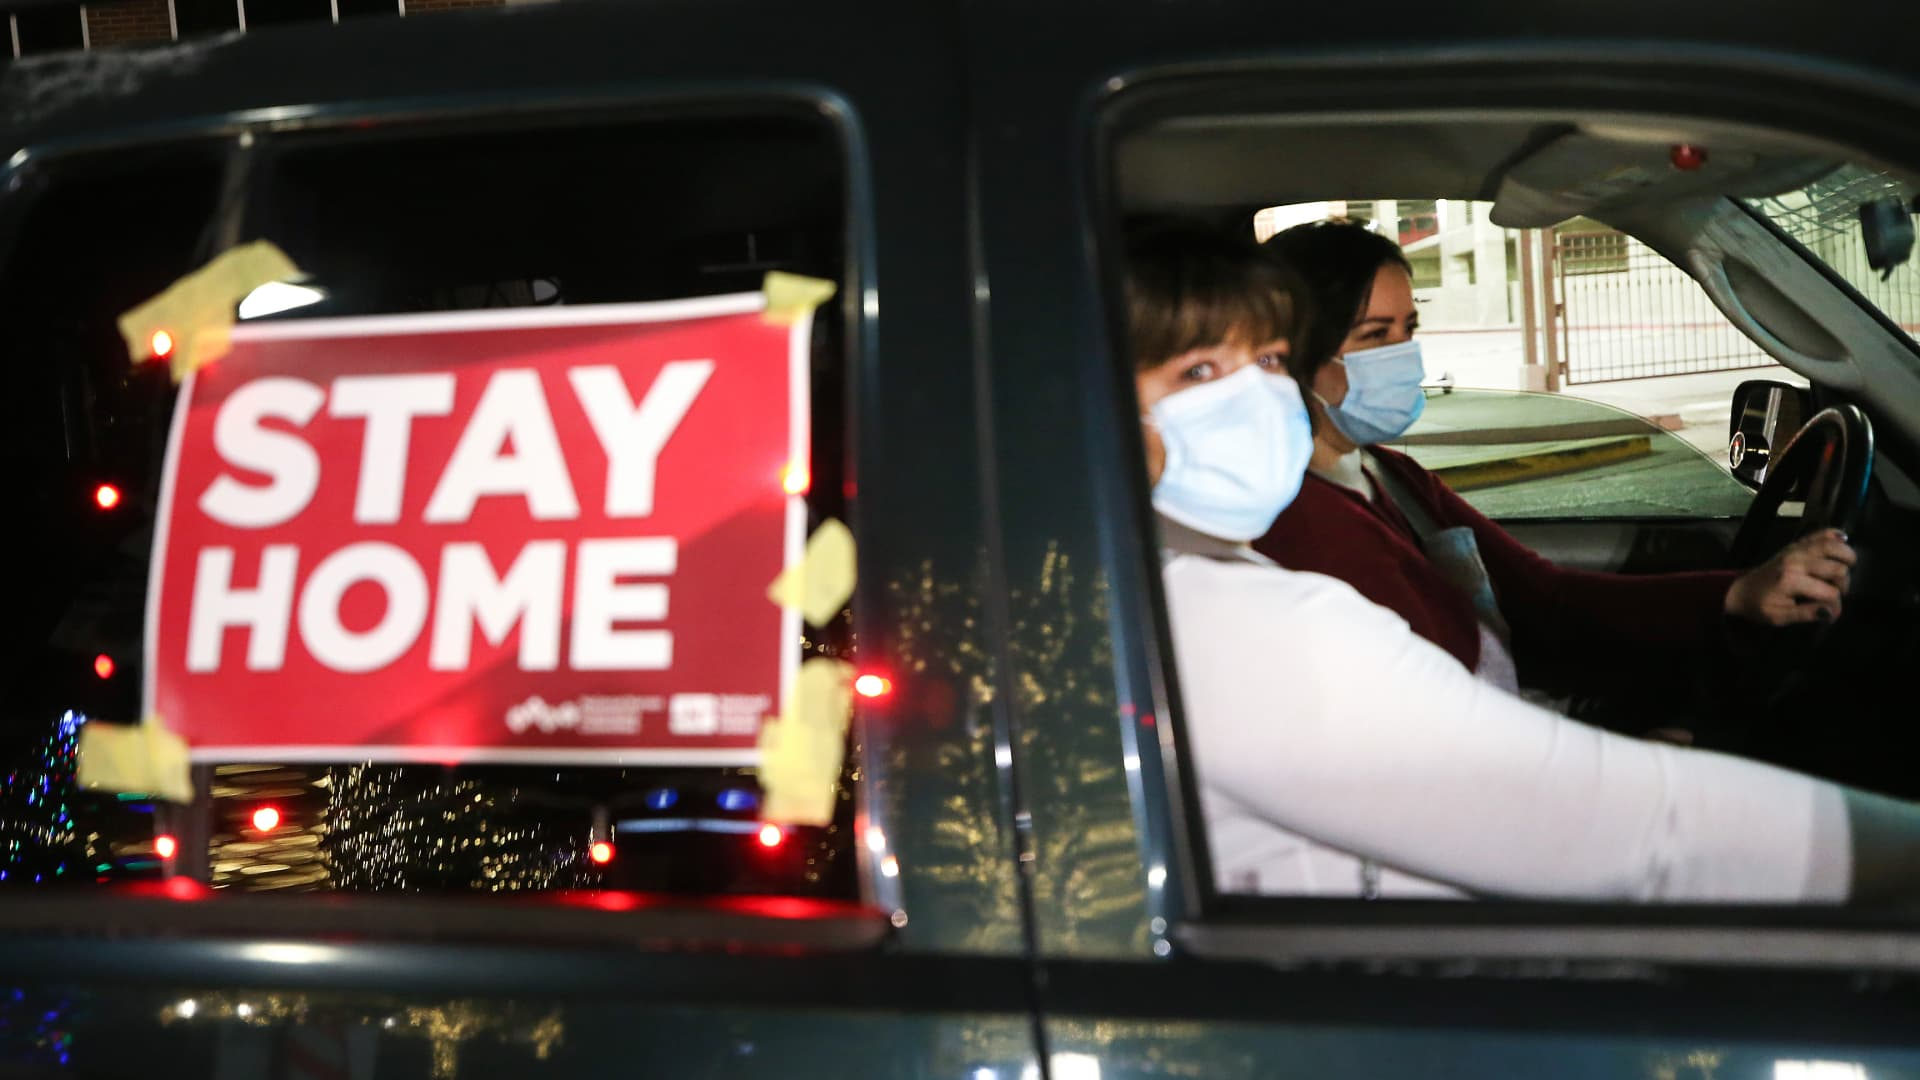 Nurses display a 'Stay Home' sign on their vehicle during a car caravan of nurses calling for people to remain home amid a surge of COVID-19 cases in El Paso on November 16, 2020 in El Paso, Texas.